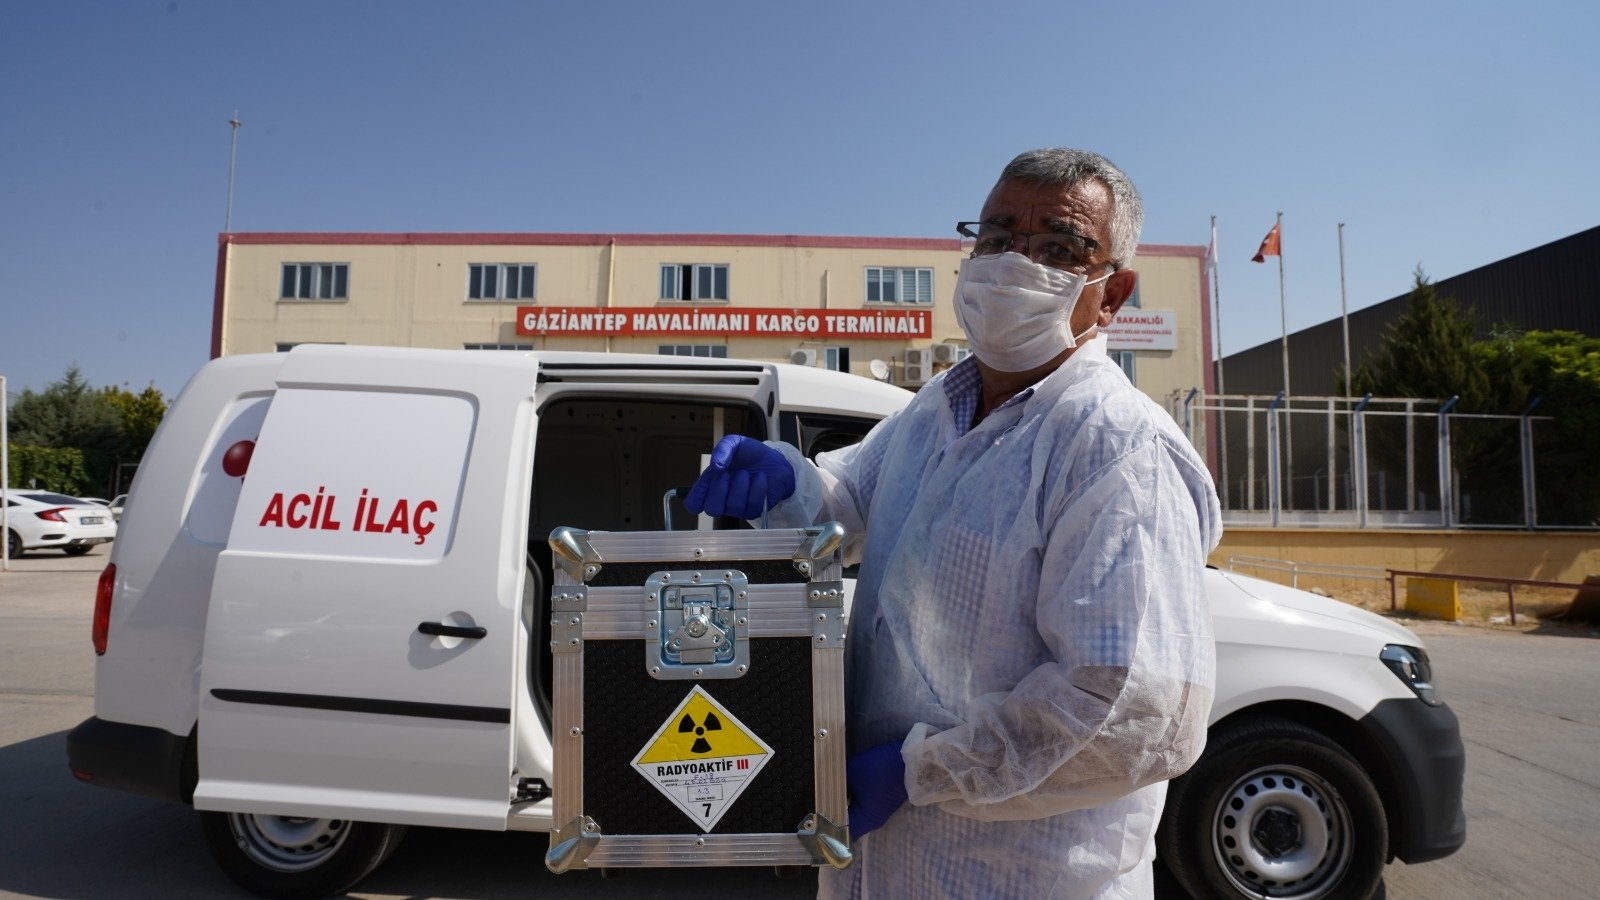 A health care worker carries a radioactive drug at the airport in Gaziantep, southern Turkey, Oct. 20, 2020. (AA Photo)